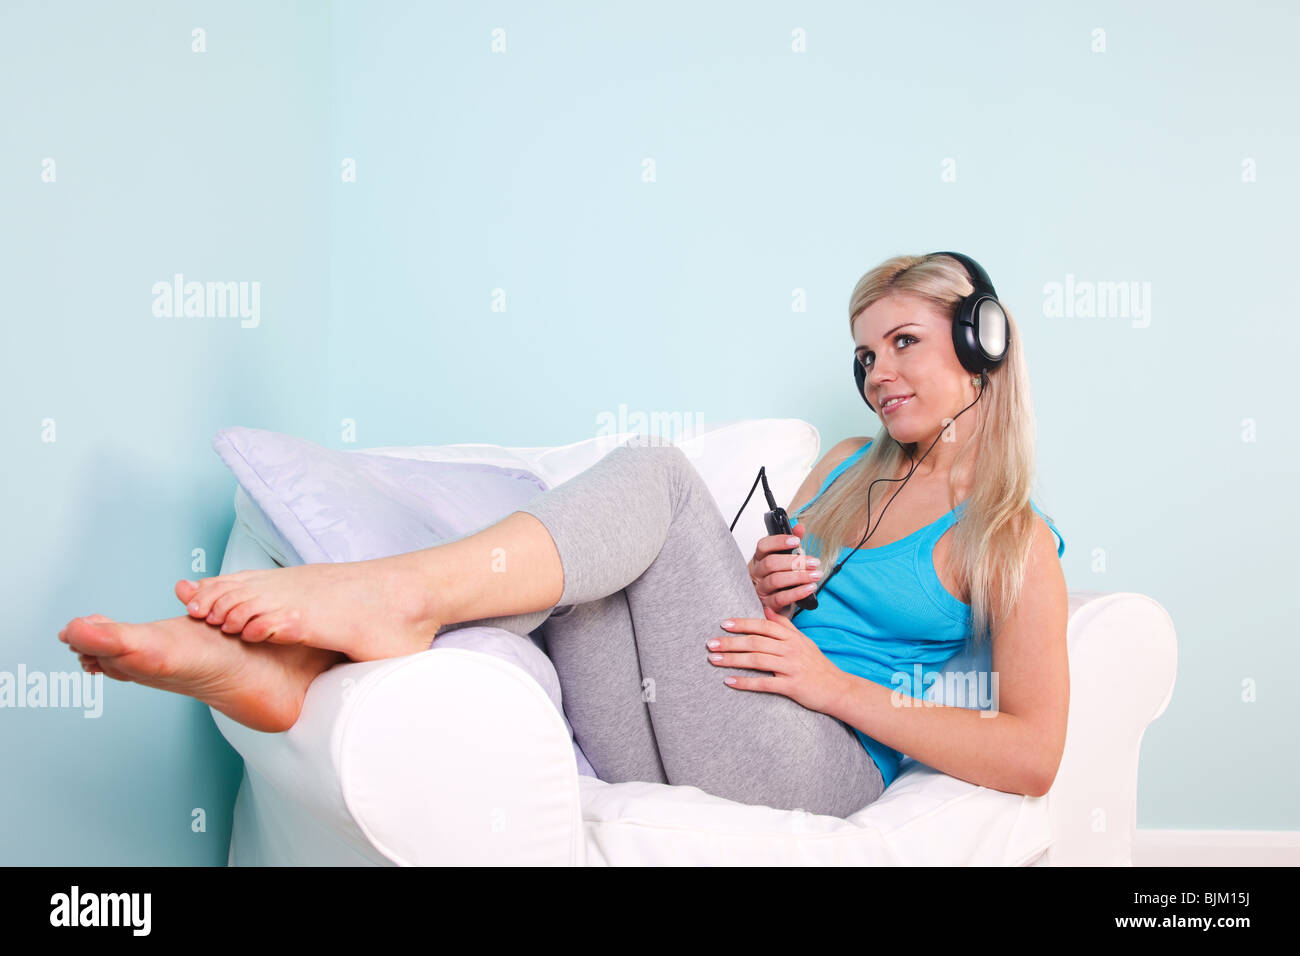 Blond woman sat in an armchair with headphones on listening to music. - Stock Image